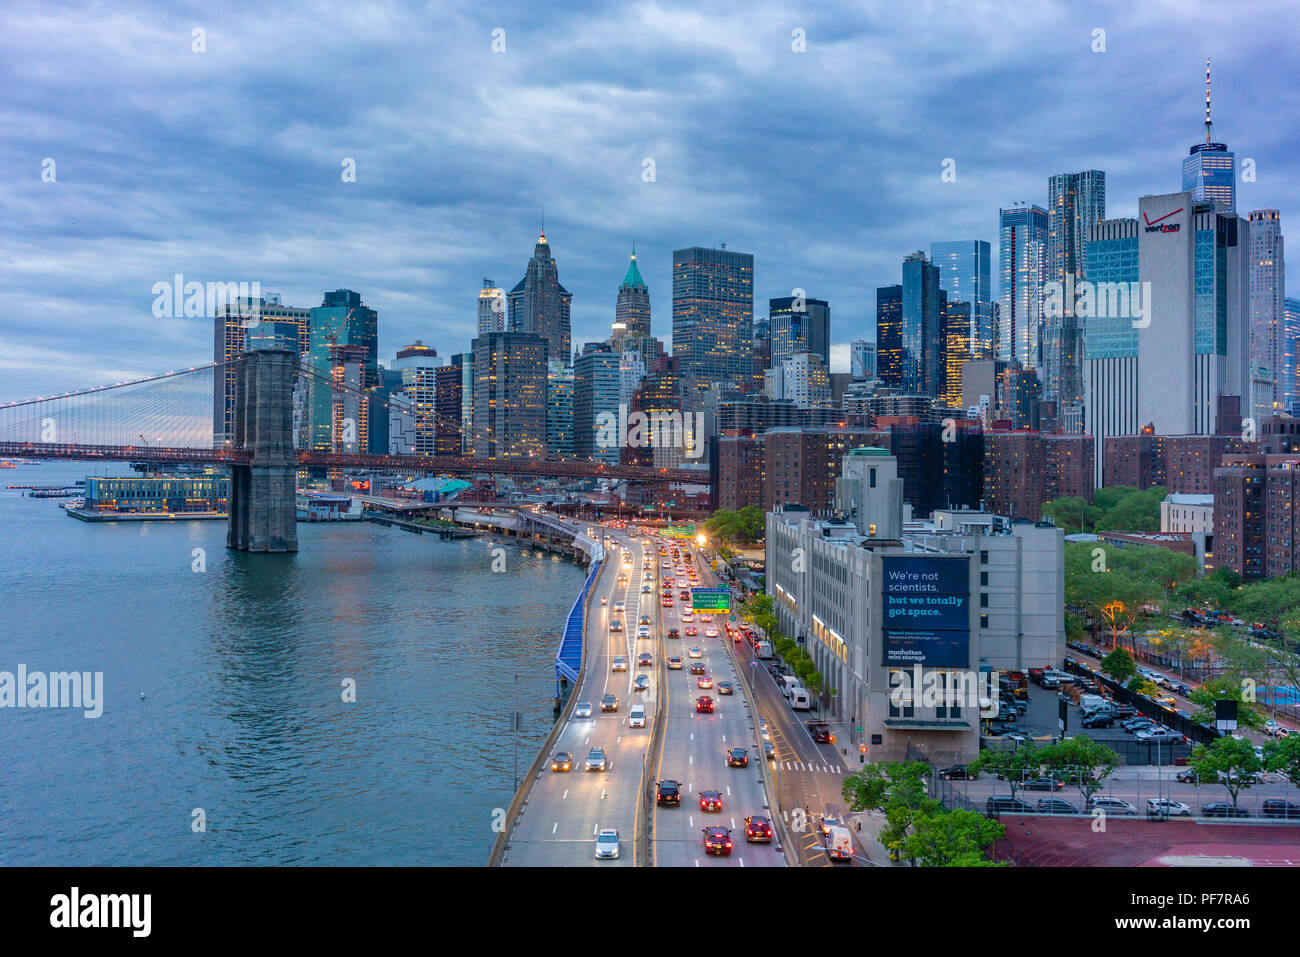 Manhattan skyline and Brooklyn Bridge - Stock Image